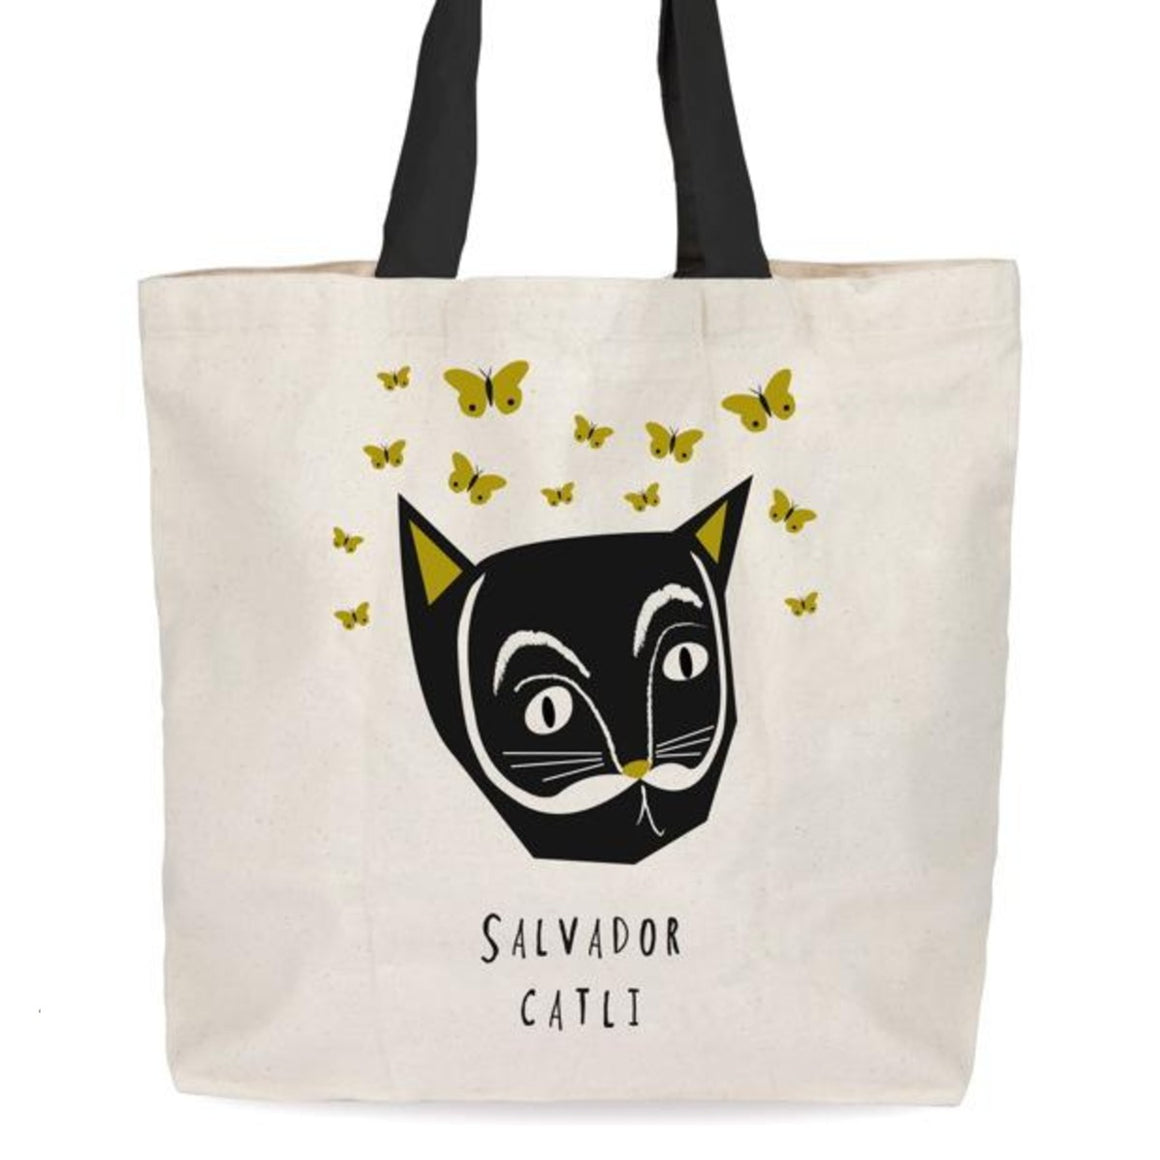 Image featuring a tote bag in the center with a graphic illustration of a cat portrait on the bag which has been made to look like Salvador Dali